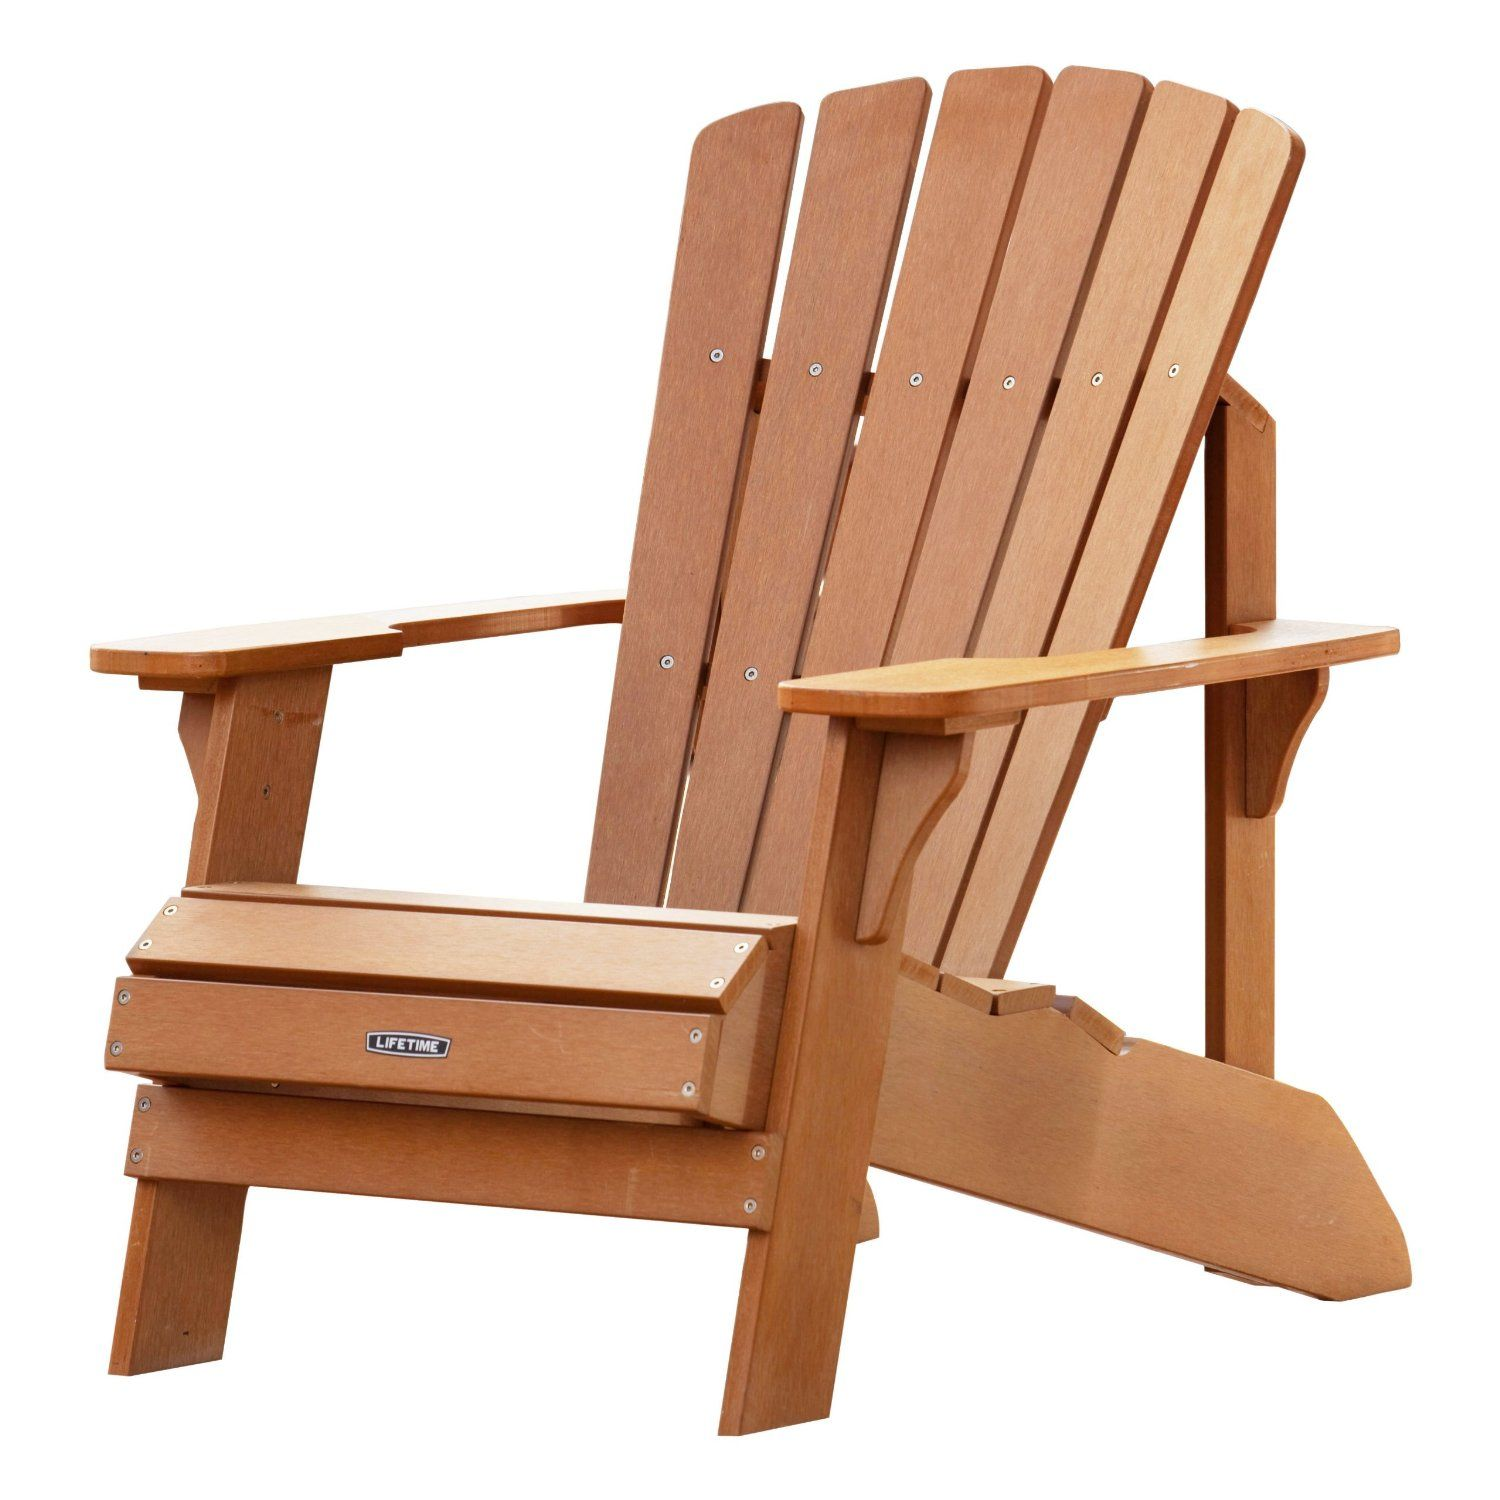 Outdoor Patio Chair Models With Resin Adirondack Chairs Nursery